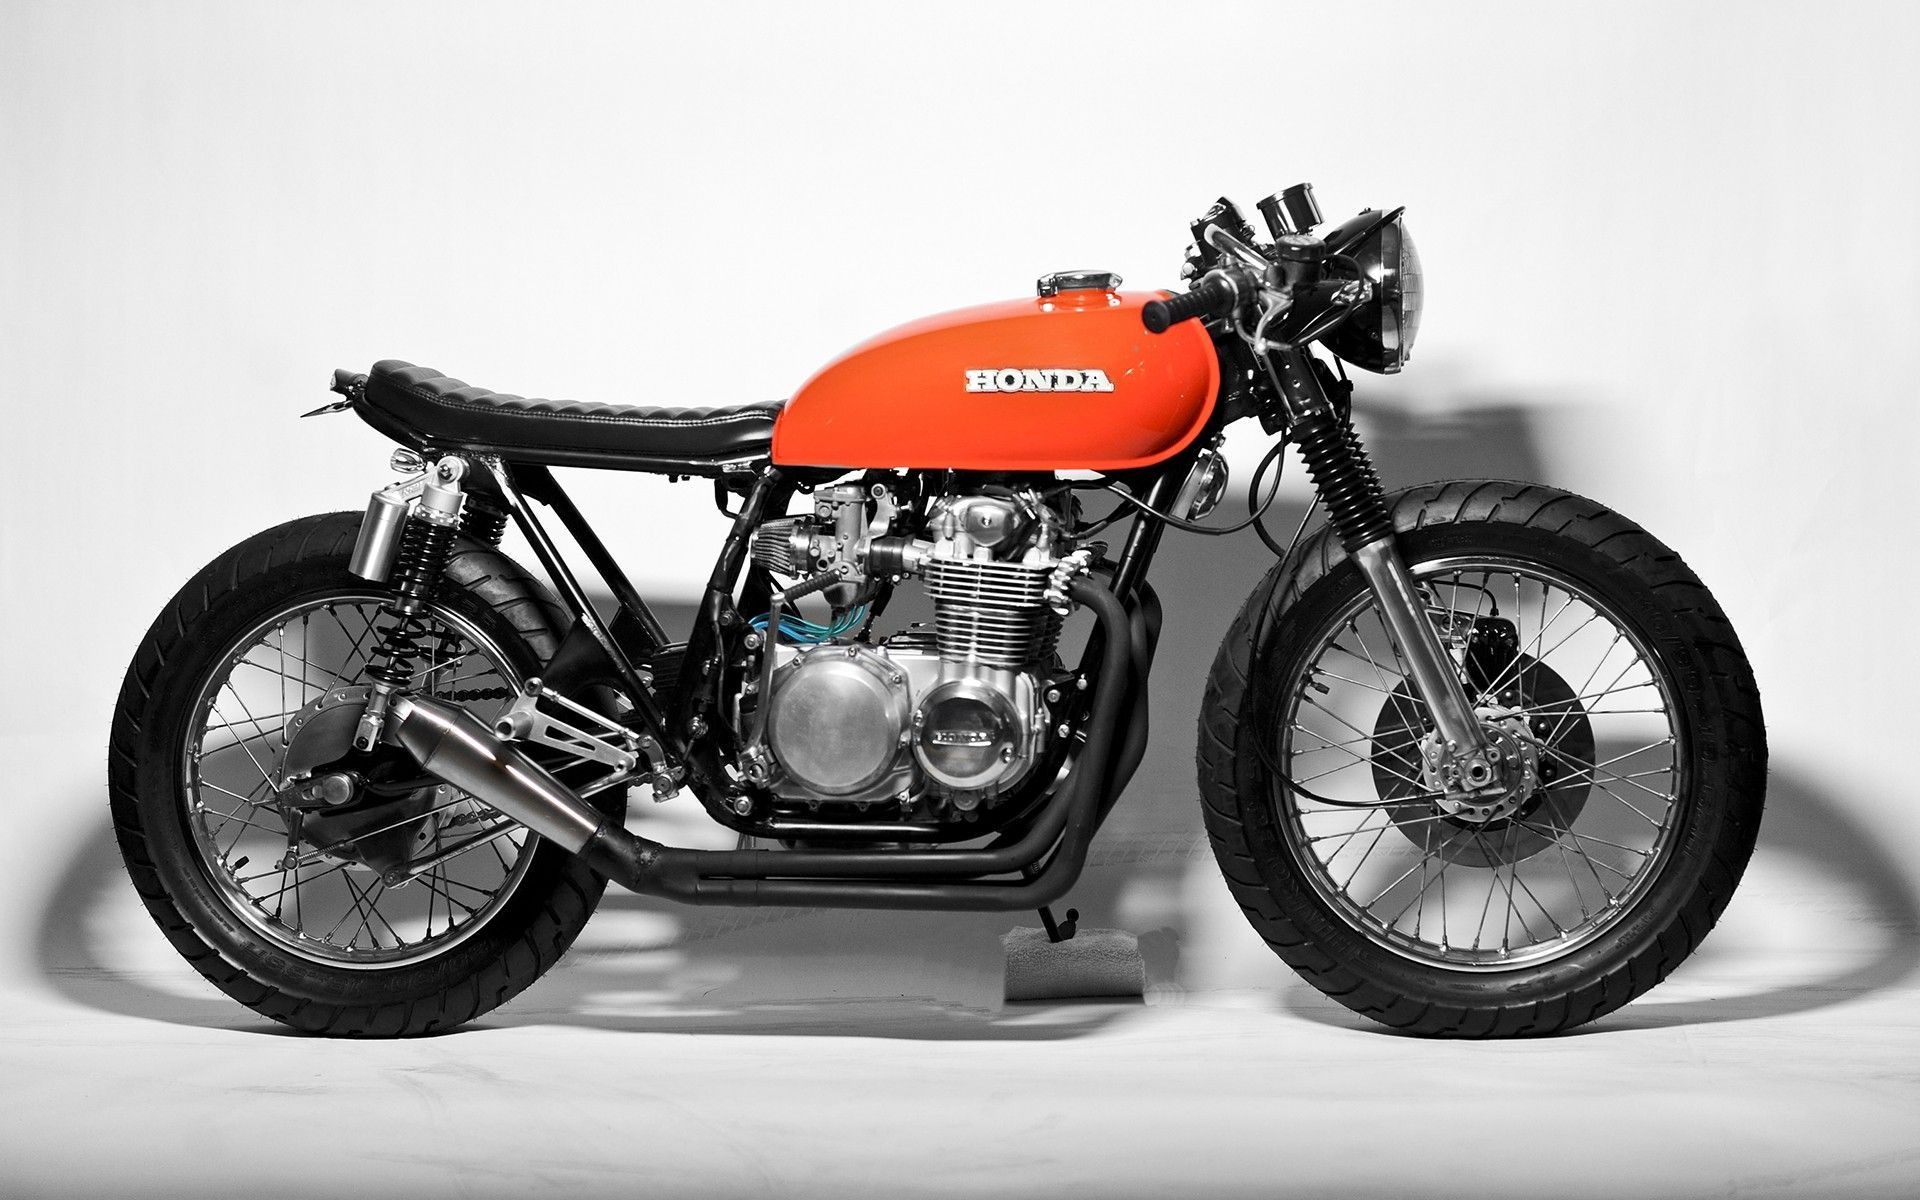 Cafe Racer Motorcycle Wallpapers - Top Free Cafe Racer ...